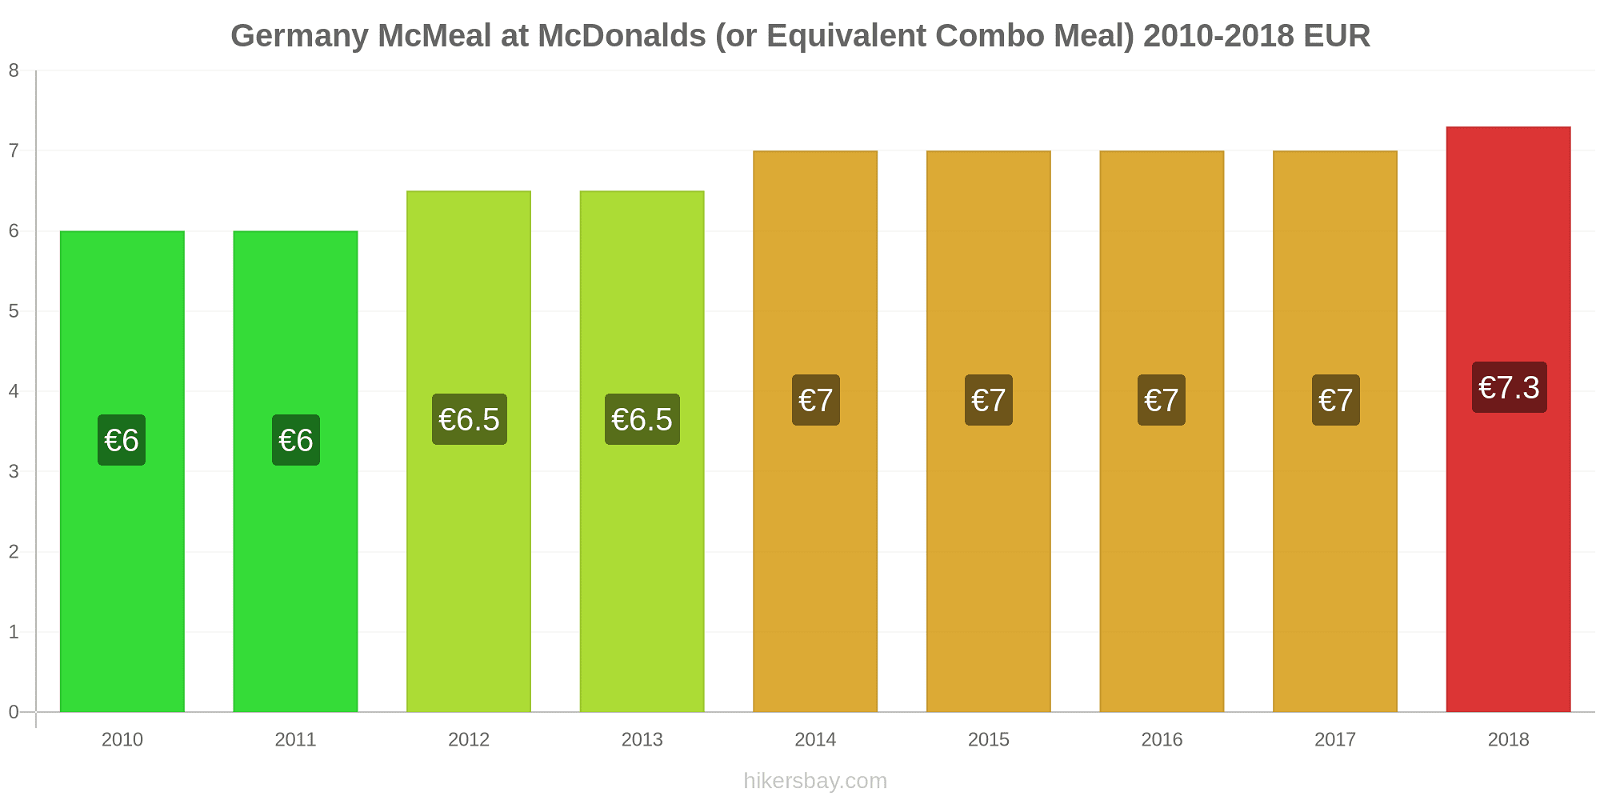 Germany price changes McMeal at McDonalds (or Equivalent Combo Meal) hikersbay.com